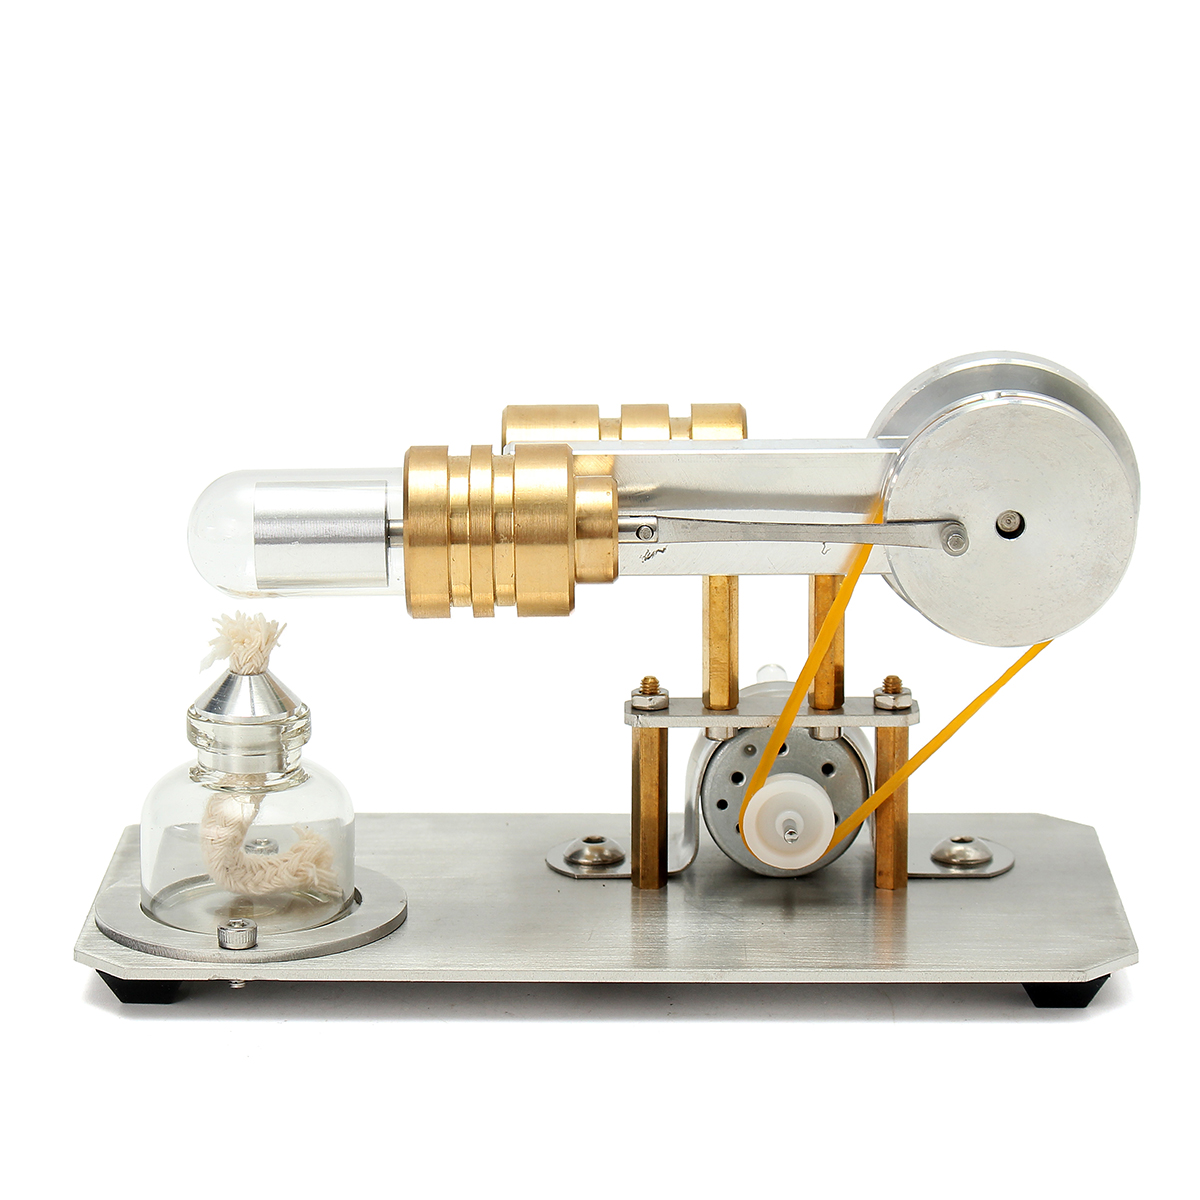 Mini Hot Air Stirling Engine Motor Model Physics Experiment Educational Toy Kit with LED Light